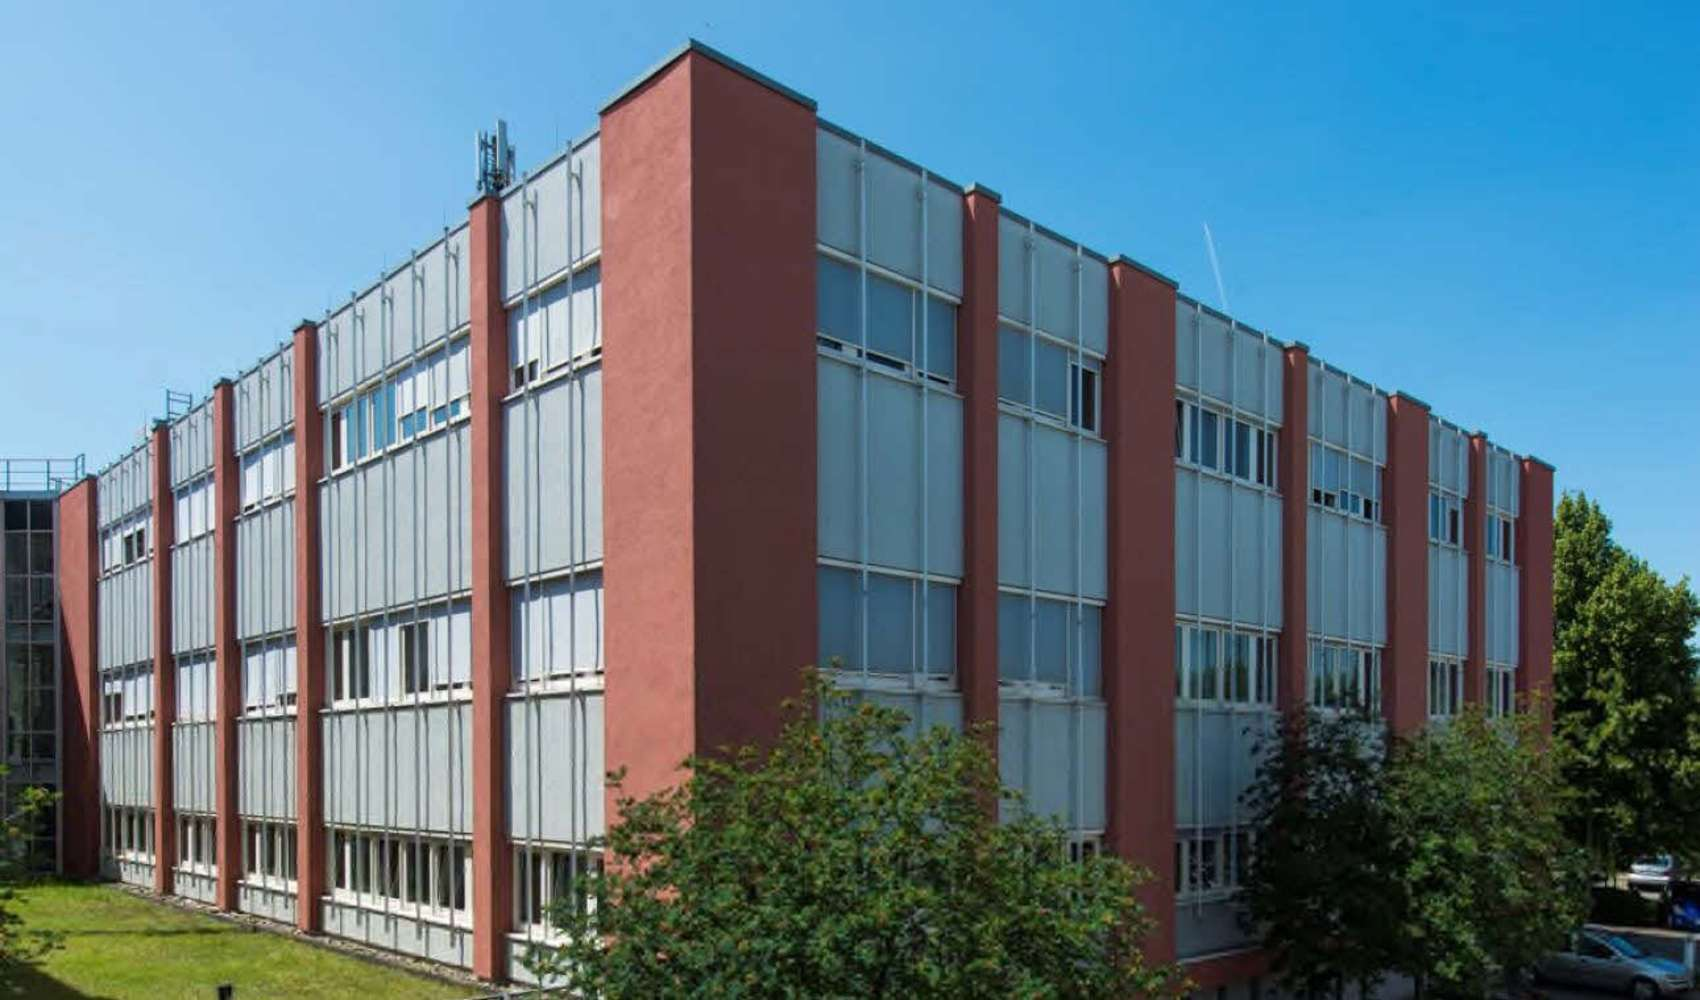 Büros Bad homburg, 61352 - Büro - Bad Homburg, Ober-Eschbach - F0273 - 9524833